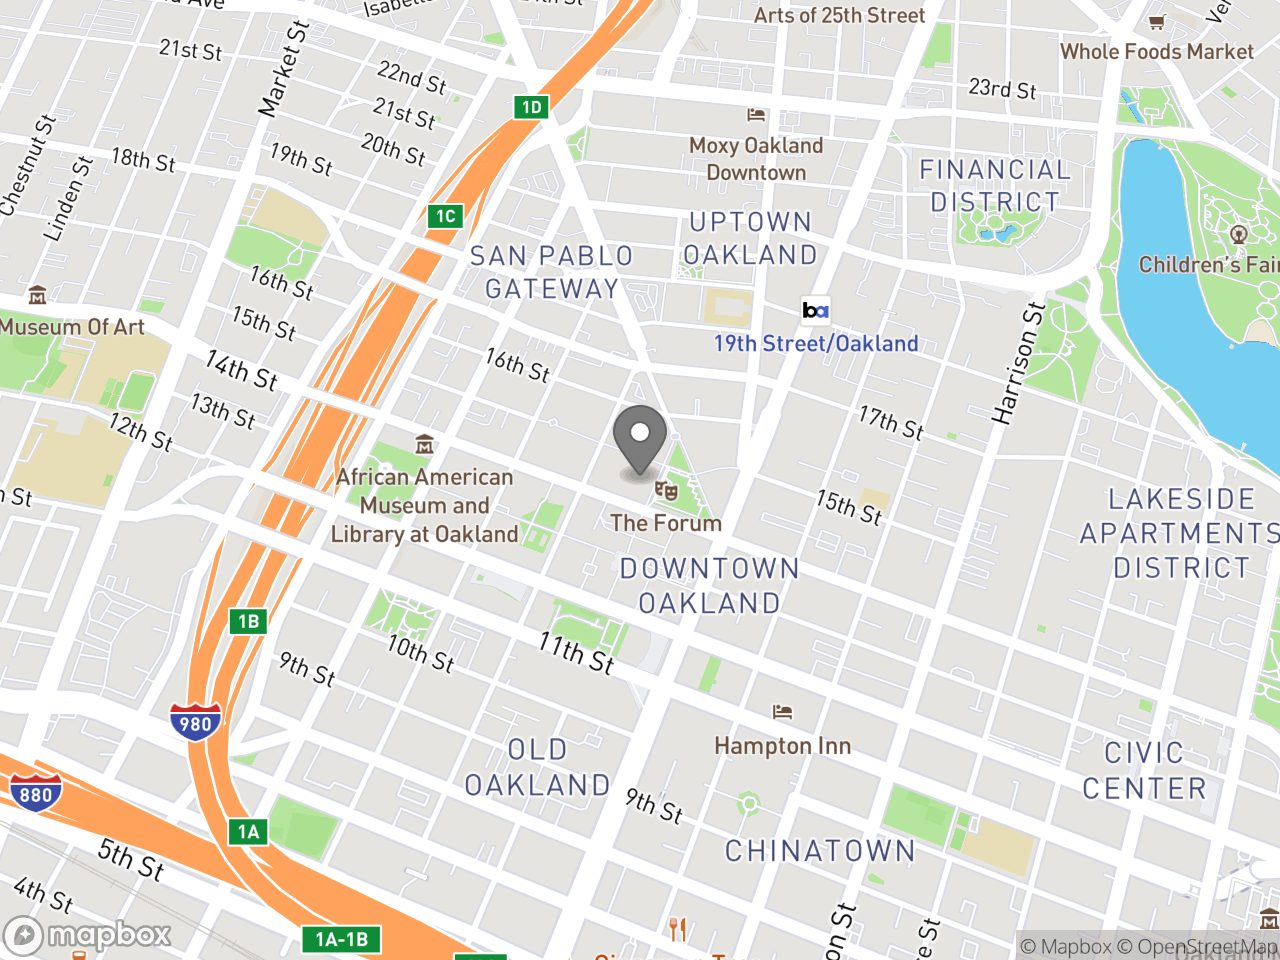 Map location for Bicyclist and Pedestrian Advisory Commission (BPAC) Meeting, October 19, 2017, located at 1 Frank H Ogawa Plaza in Oakland, CA 94612